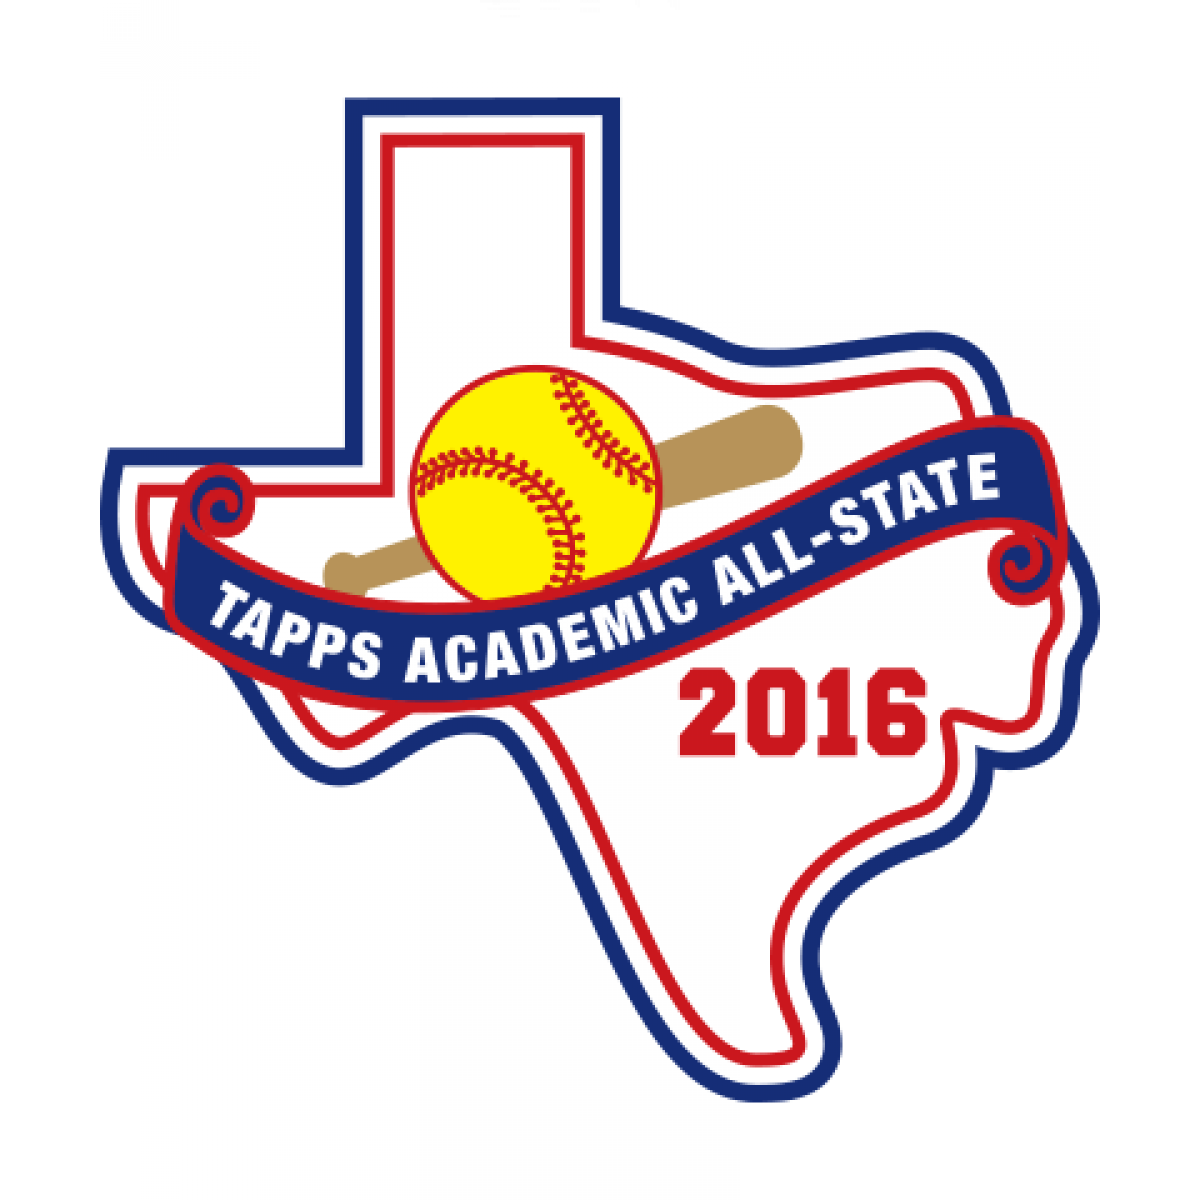 Felt TAPPS 2016 Softball Academic All-State Patch